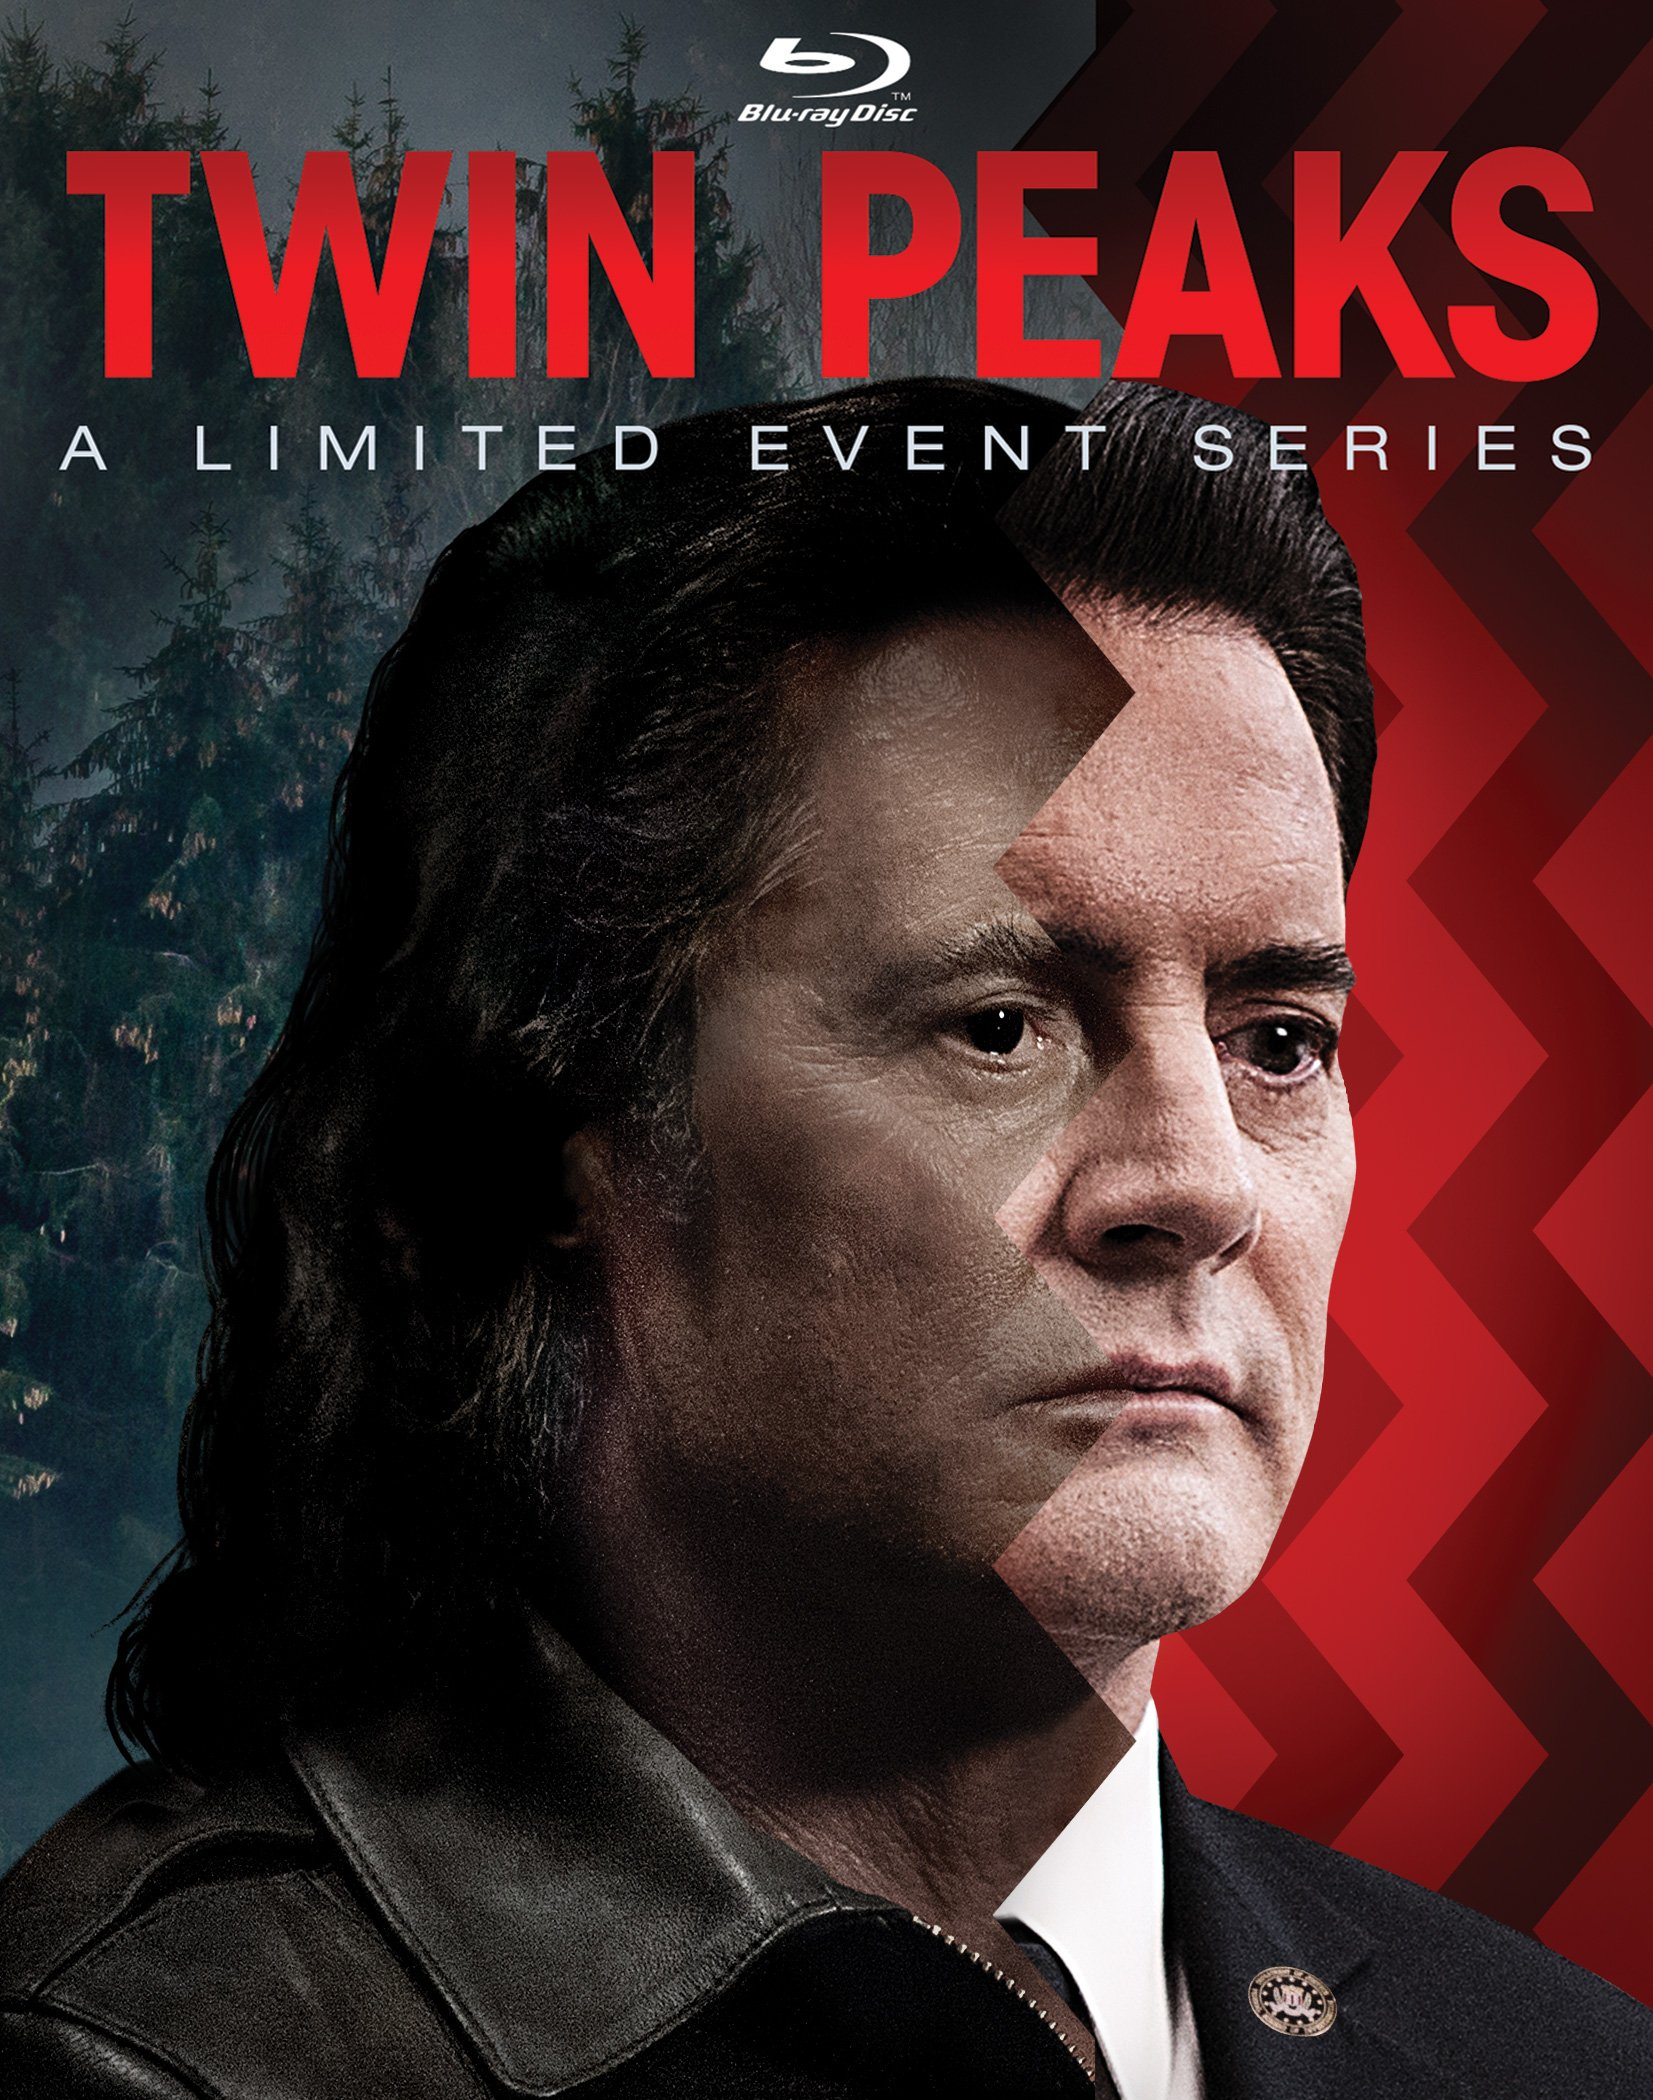 Twin Peaks Limited Event